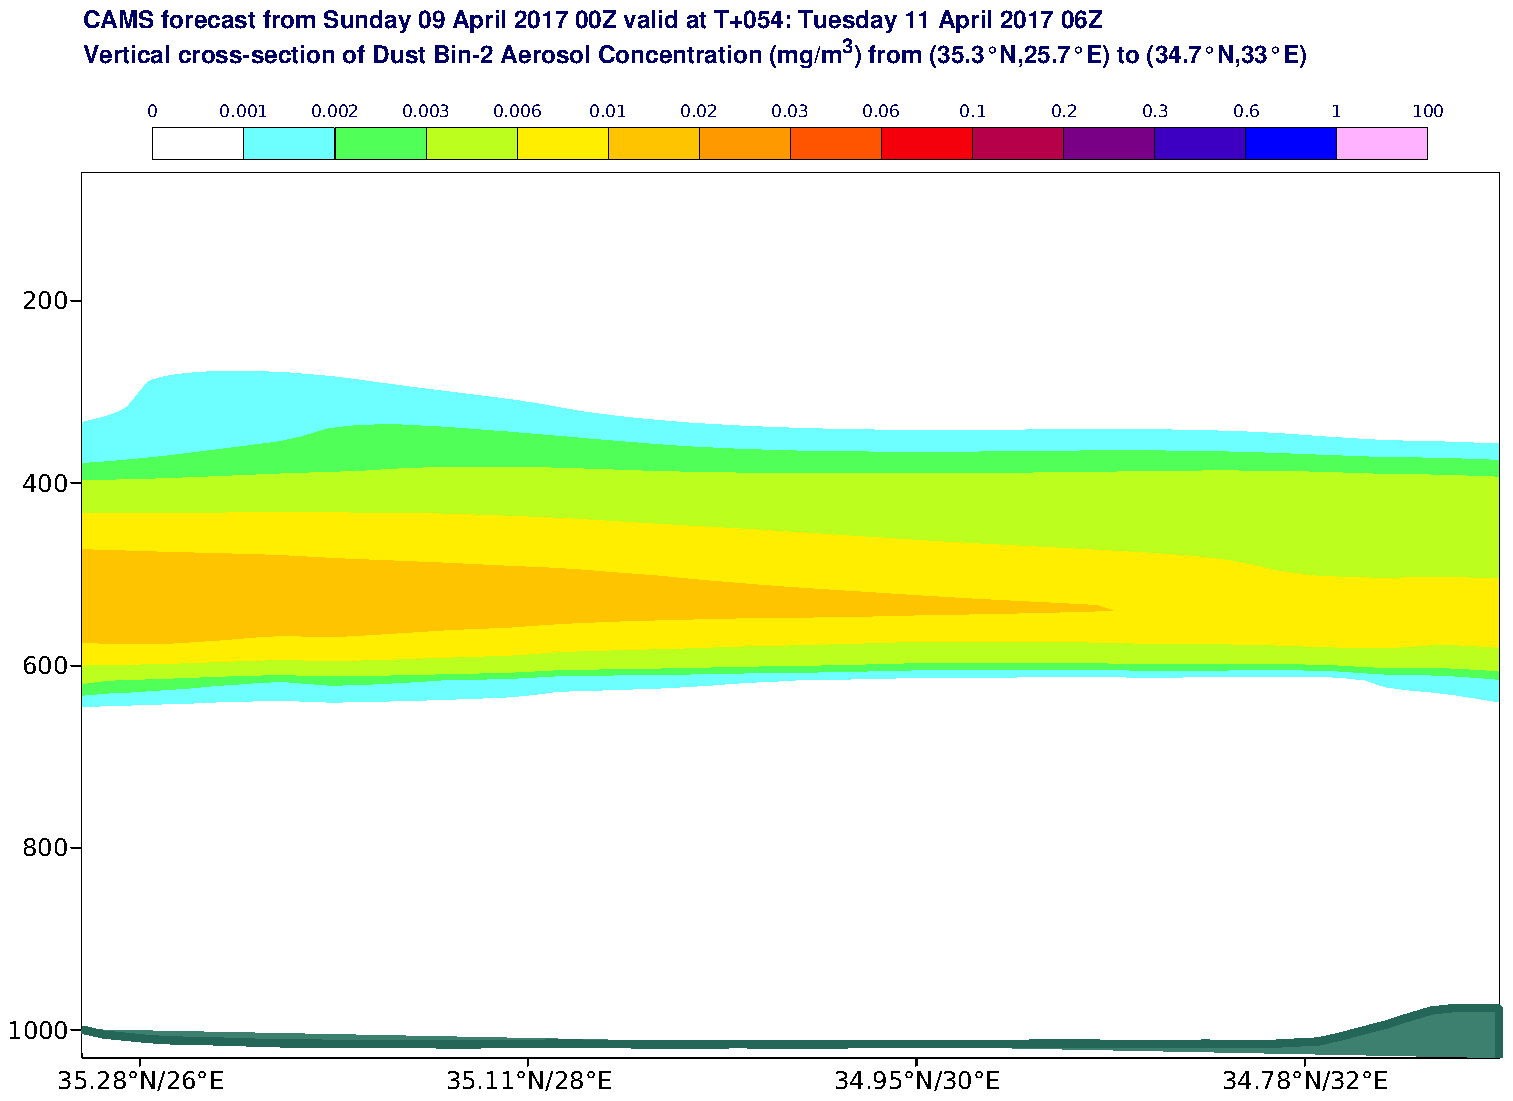 Vertical cross-section of Dust Bin-2 Aerosol Concentration (mg/m3) valid at T54 - 2017-04-11 06:00